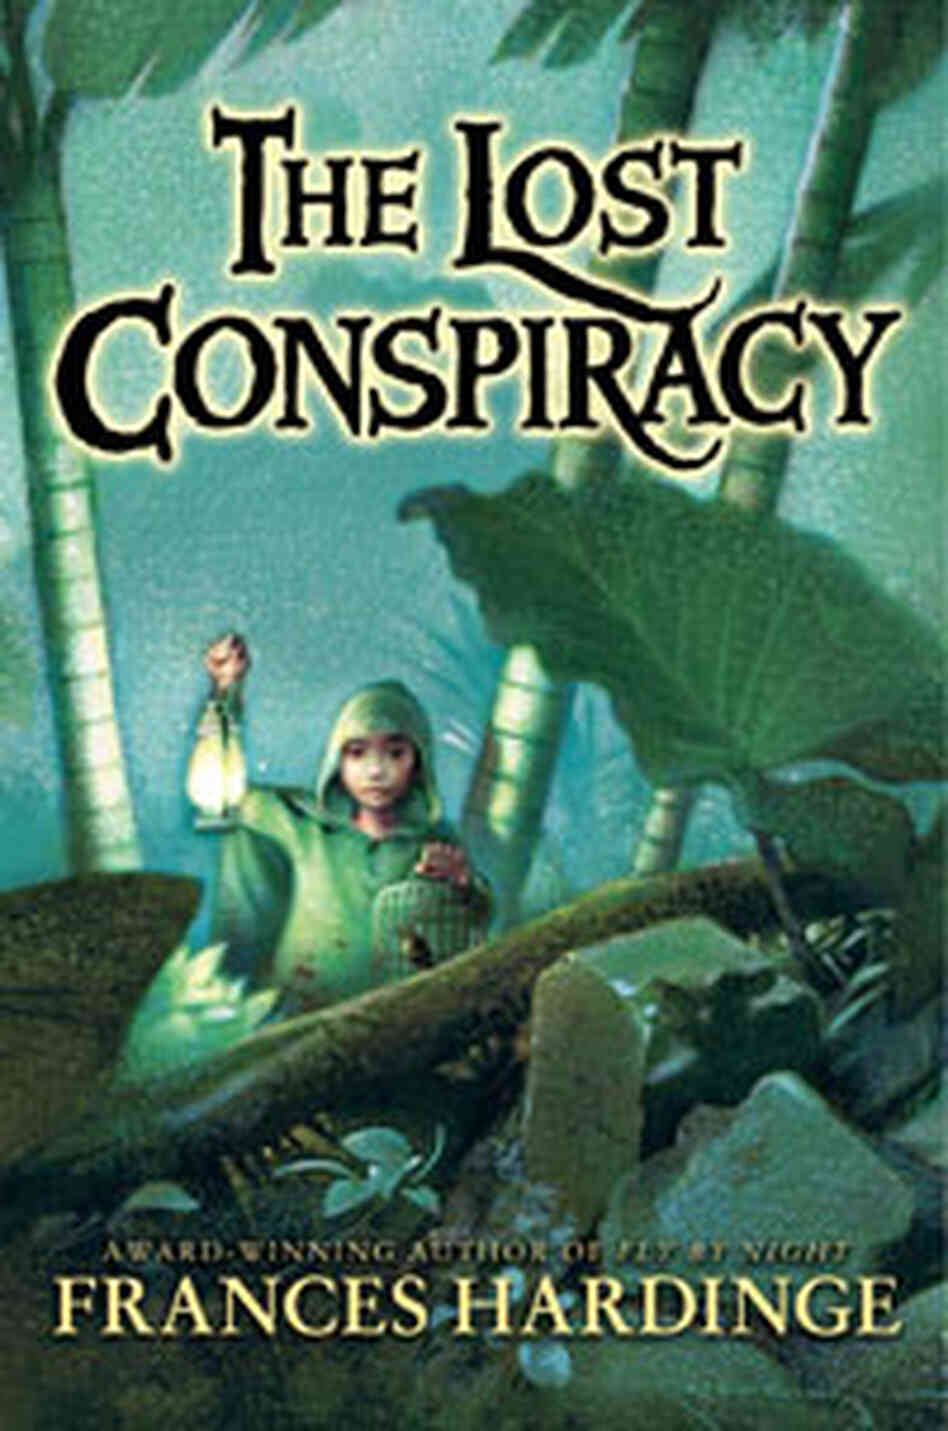 'The Lost Conspiracy'